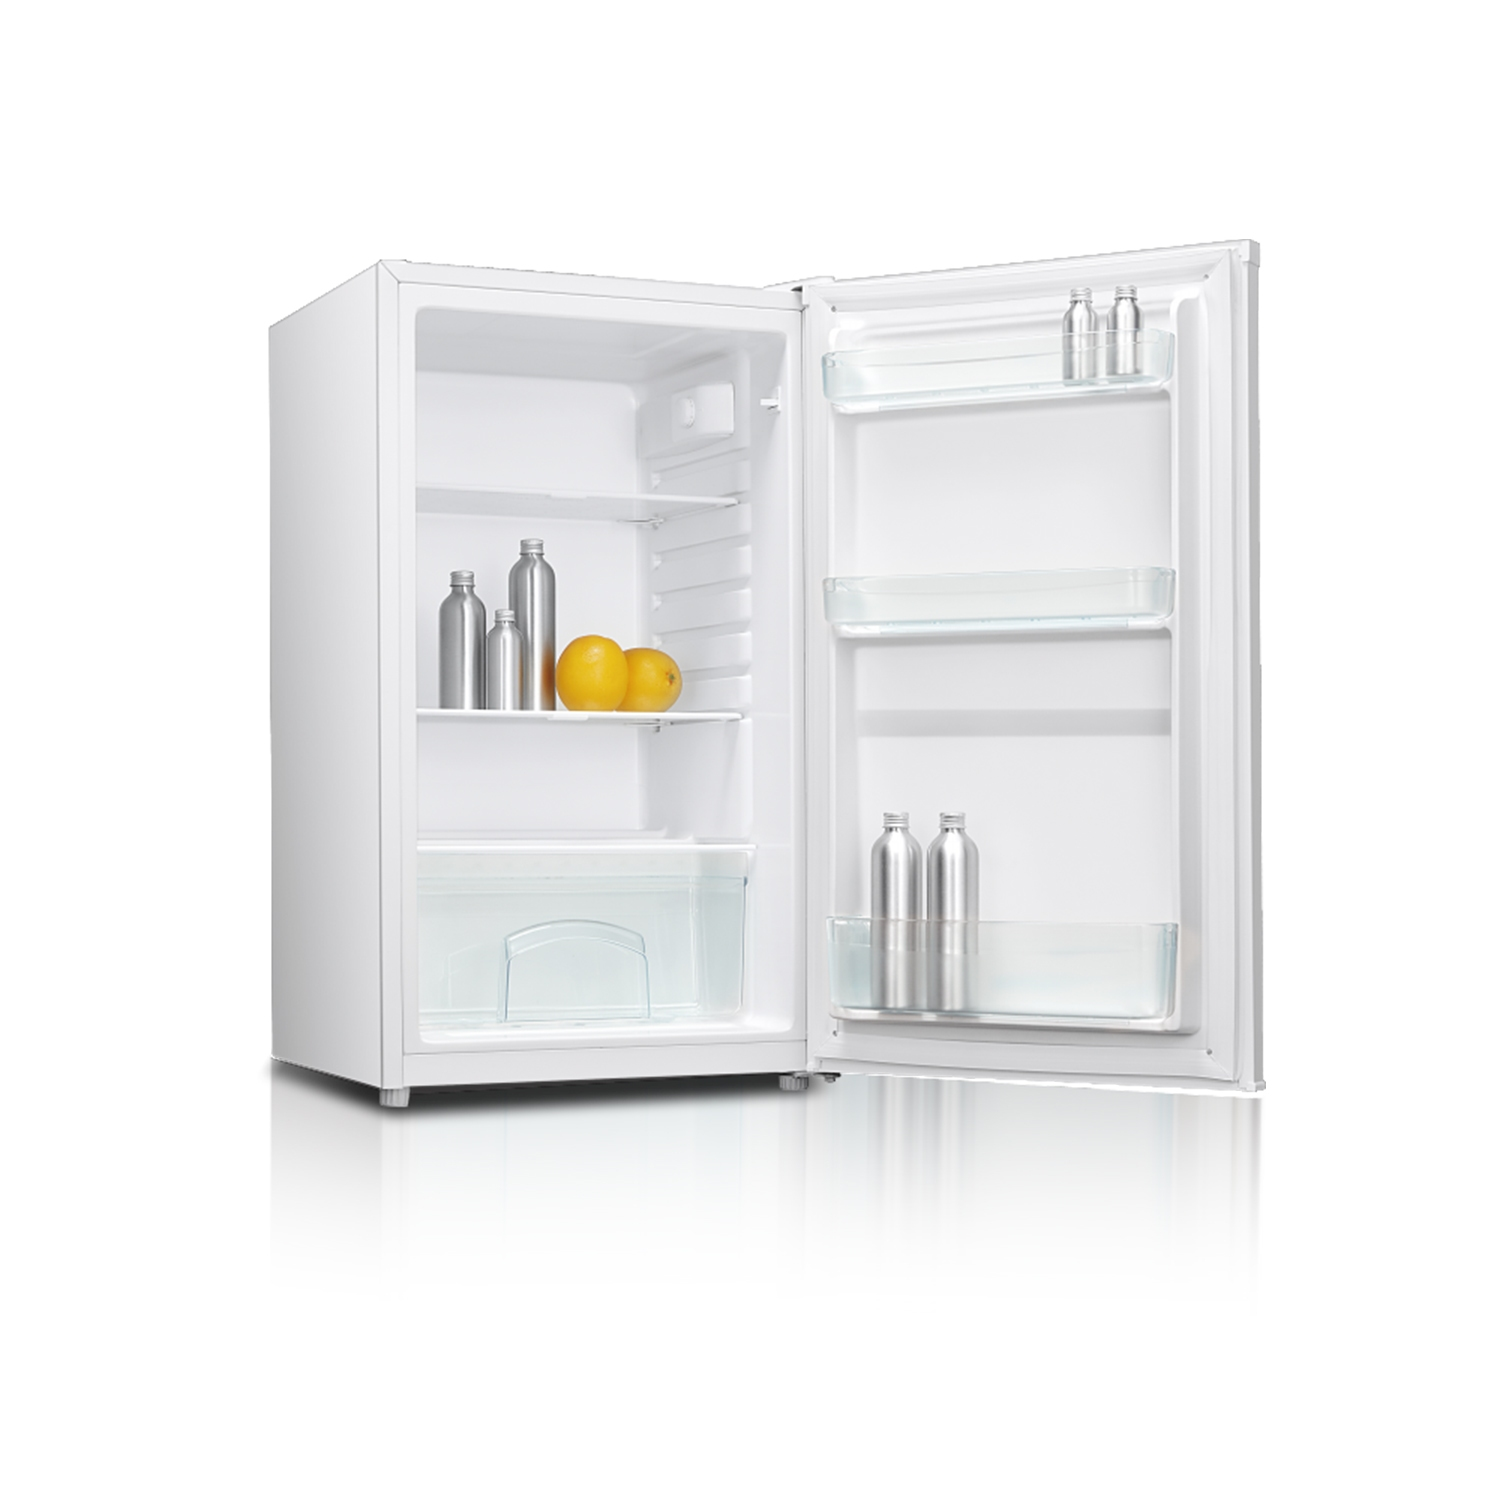 Haden Undercounter Larder Fridge - White - A+ Energy Rated - 0